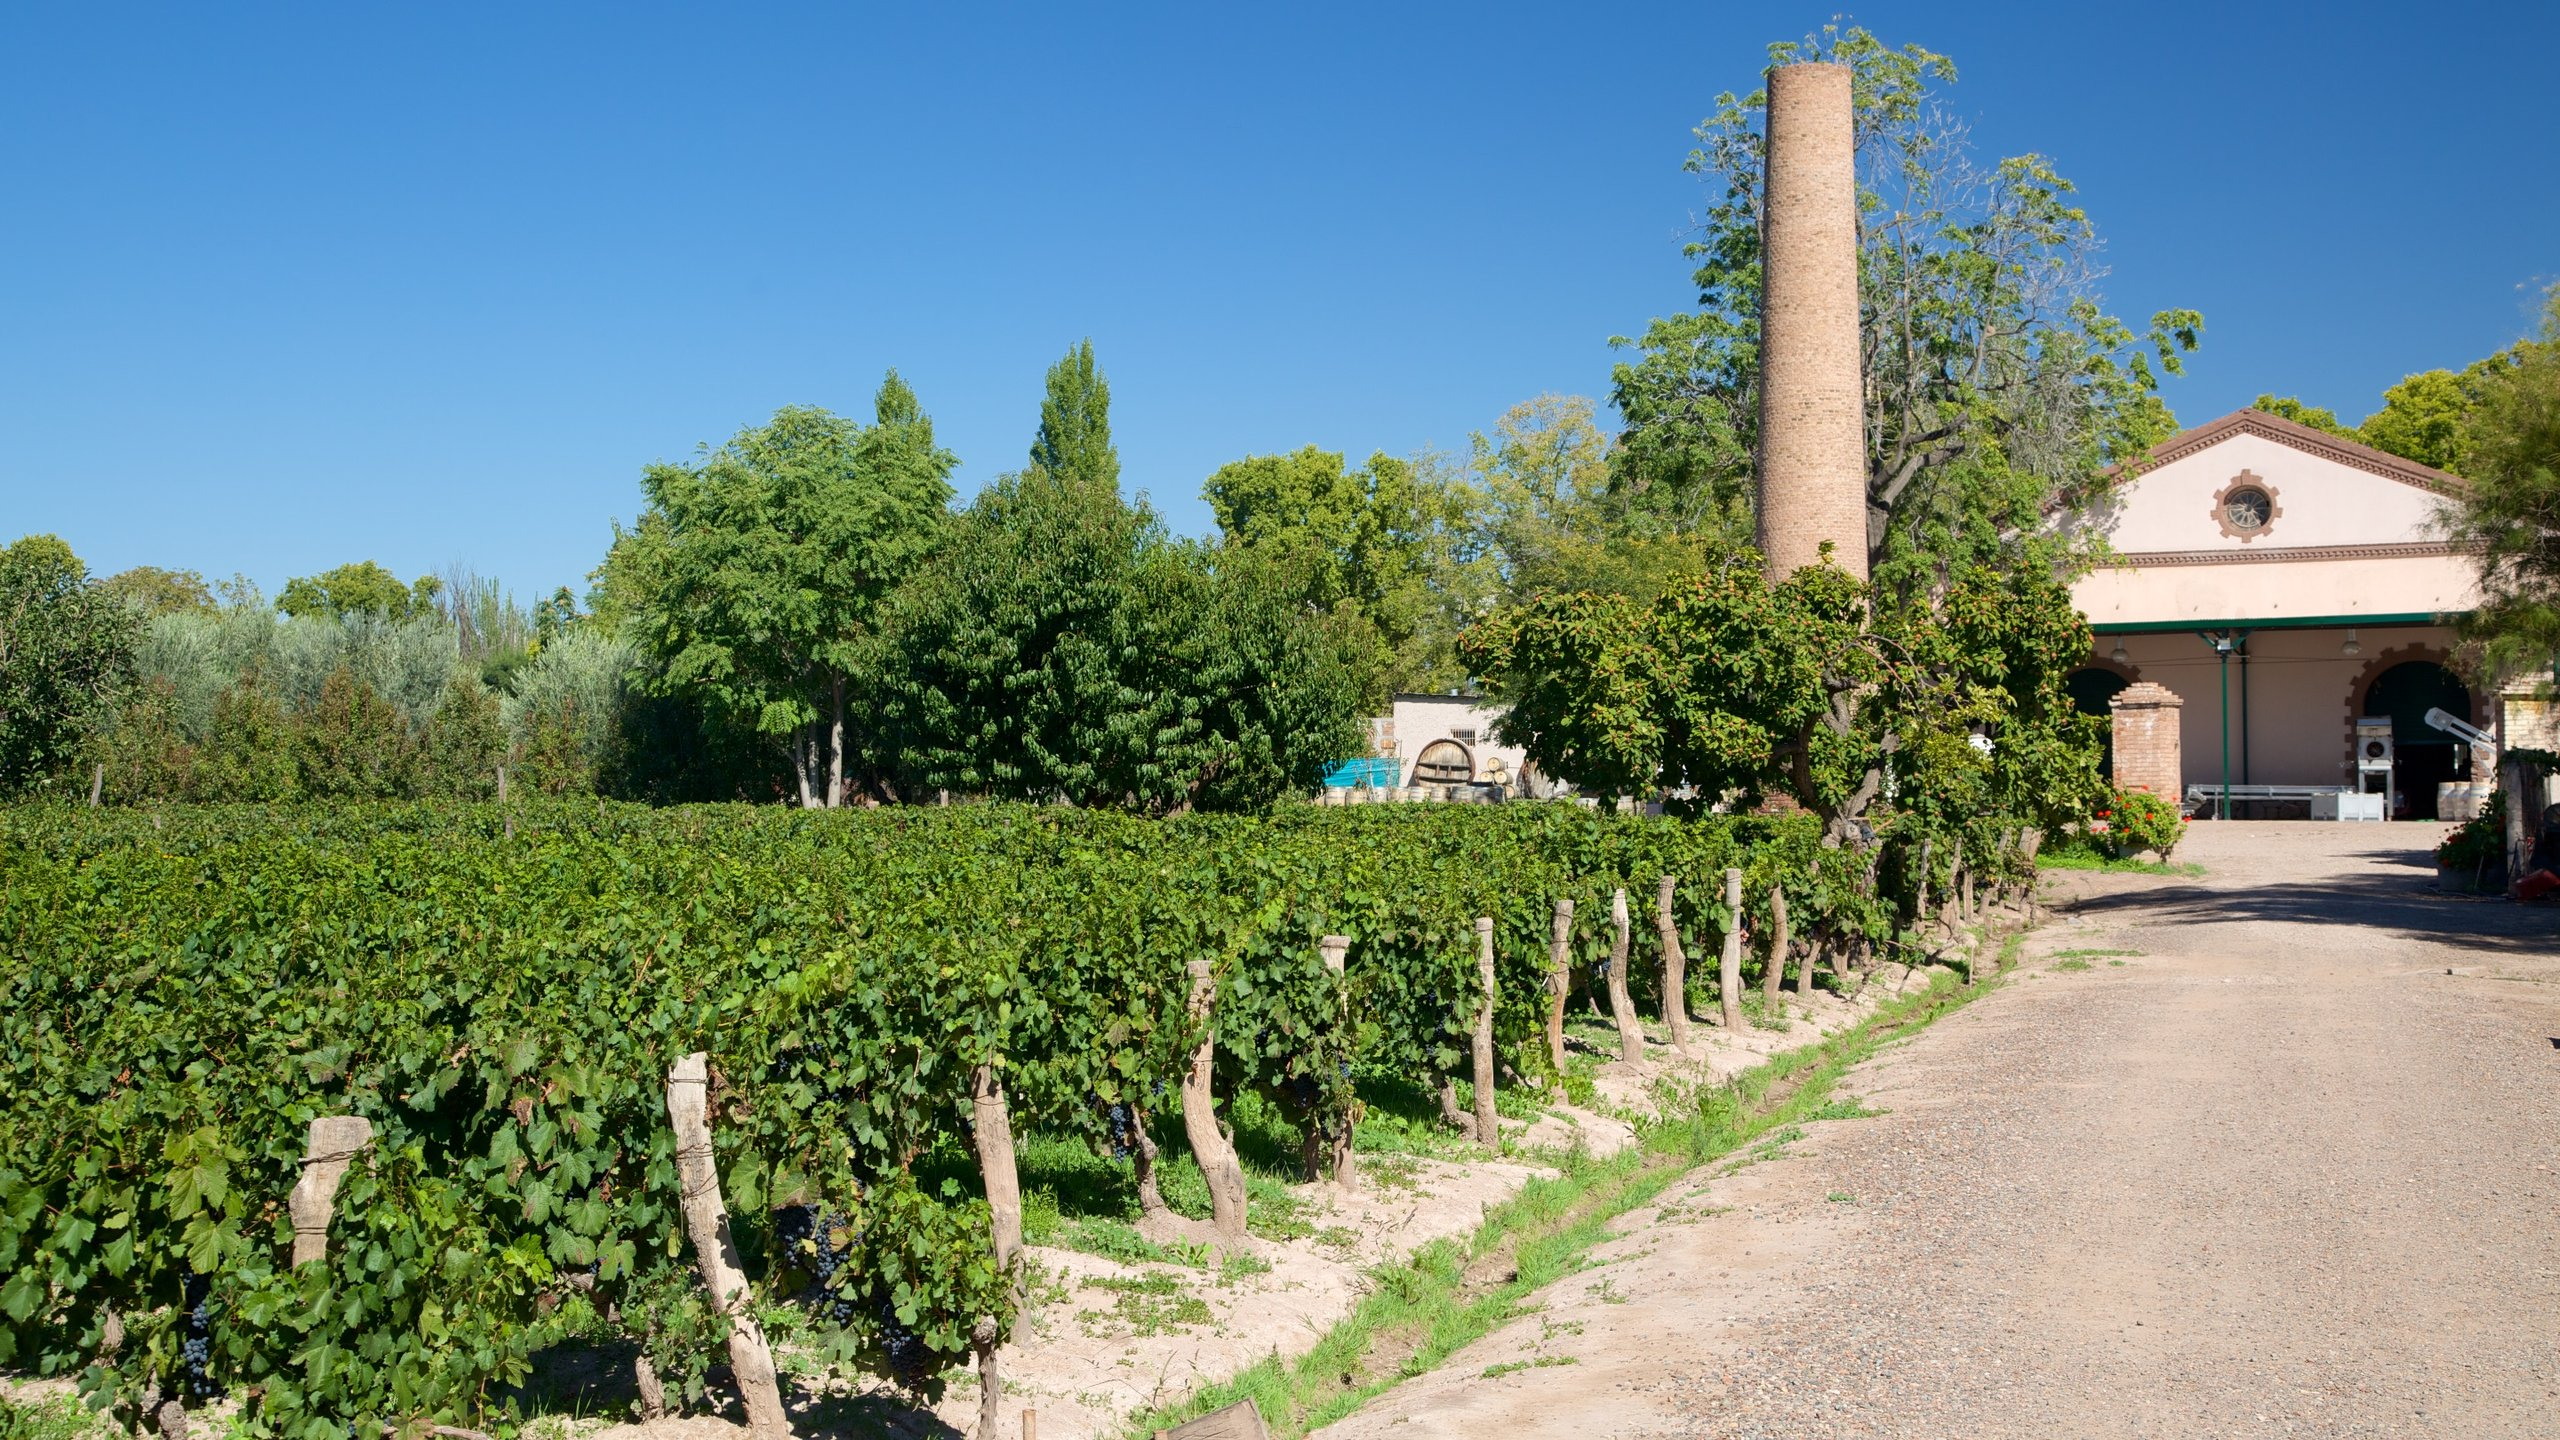 Lagarde Winery which includes farmland and a house